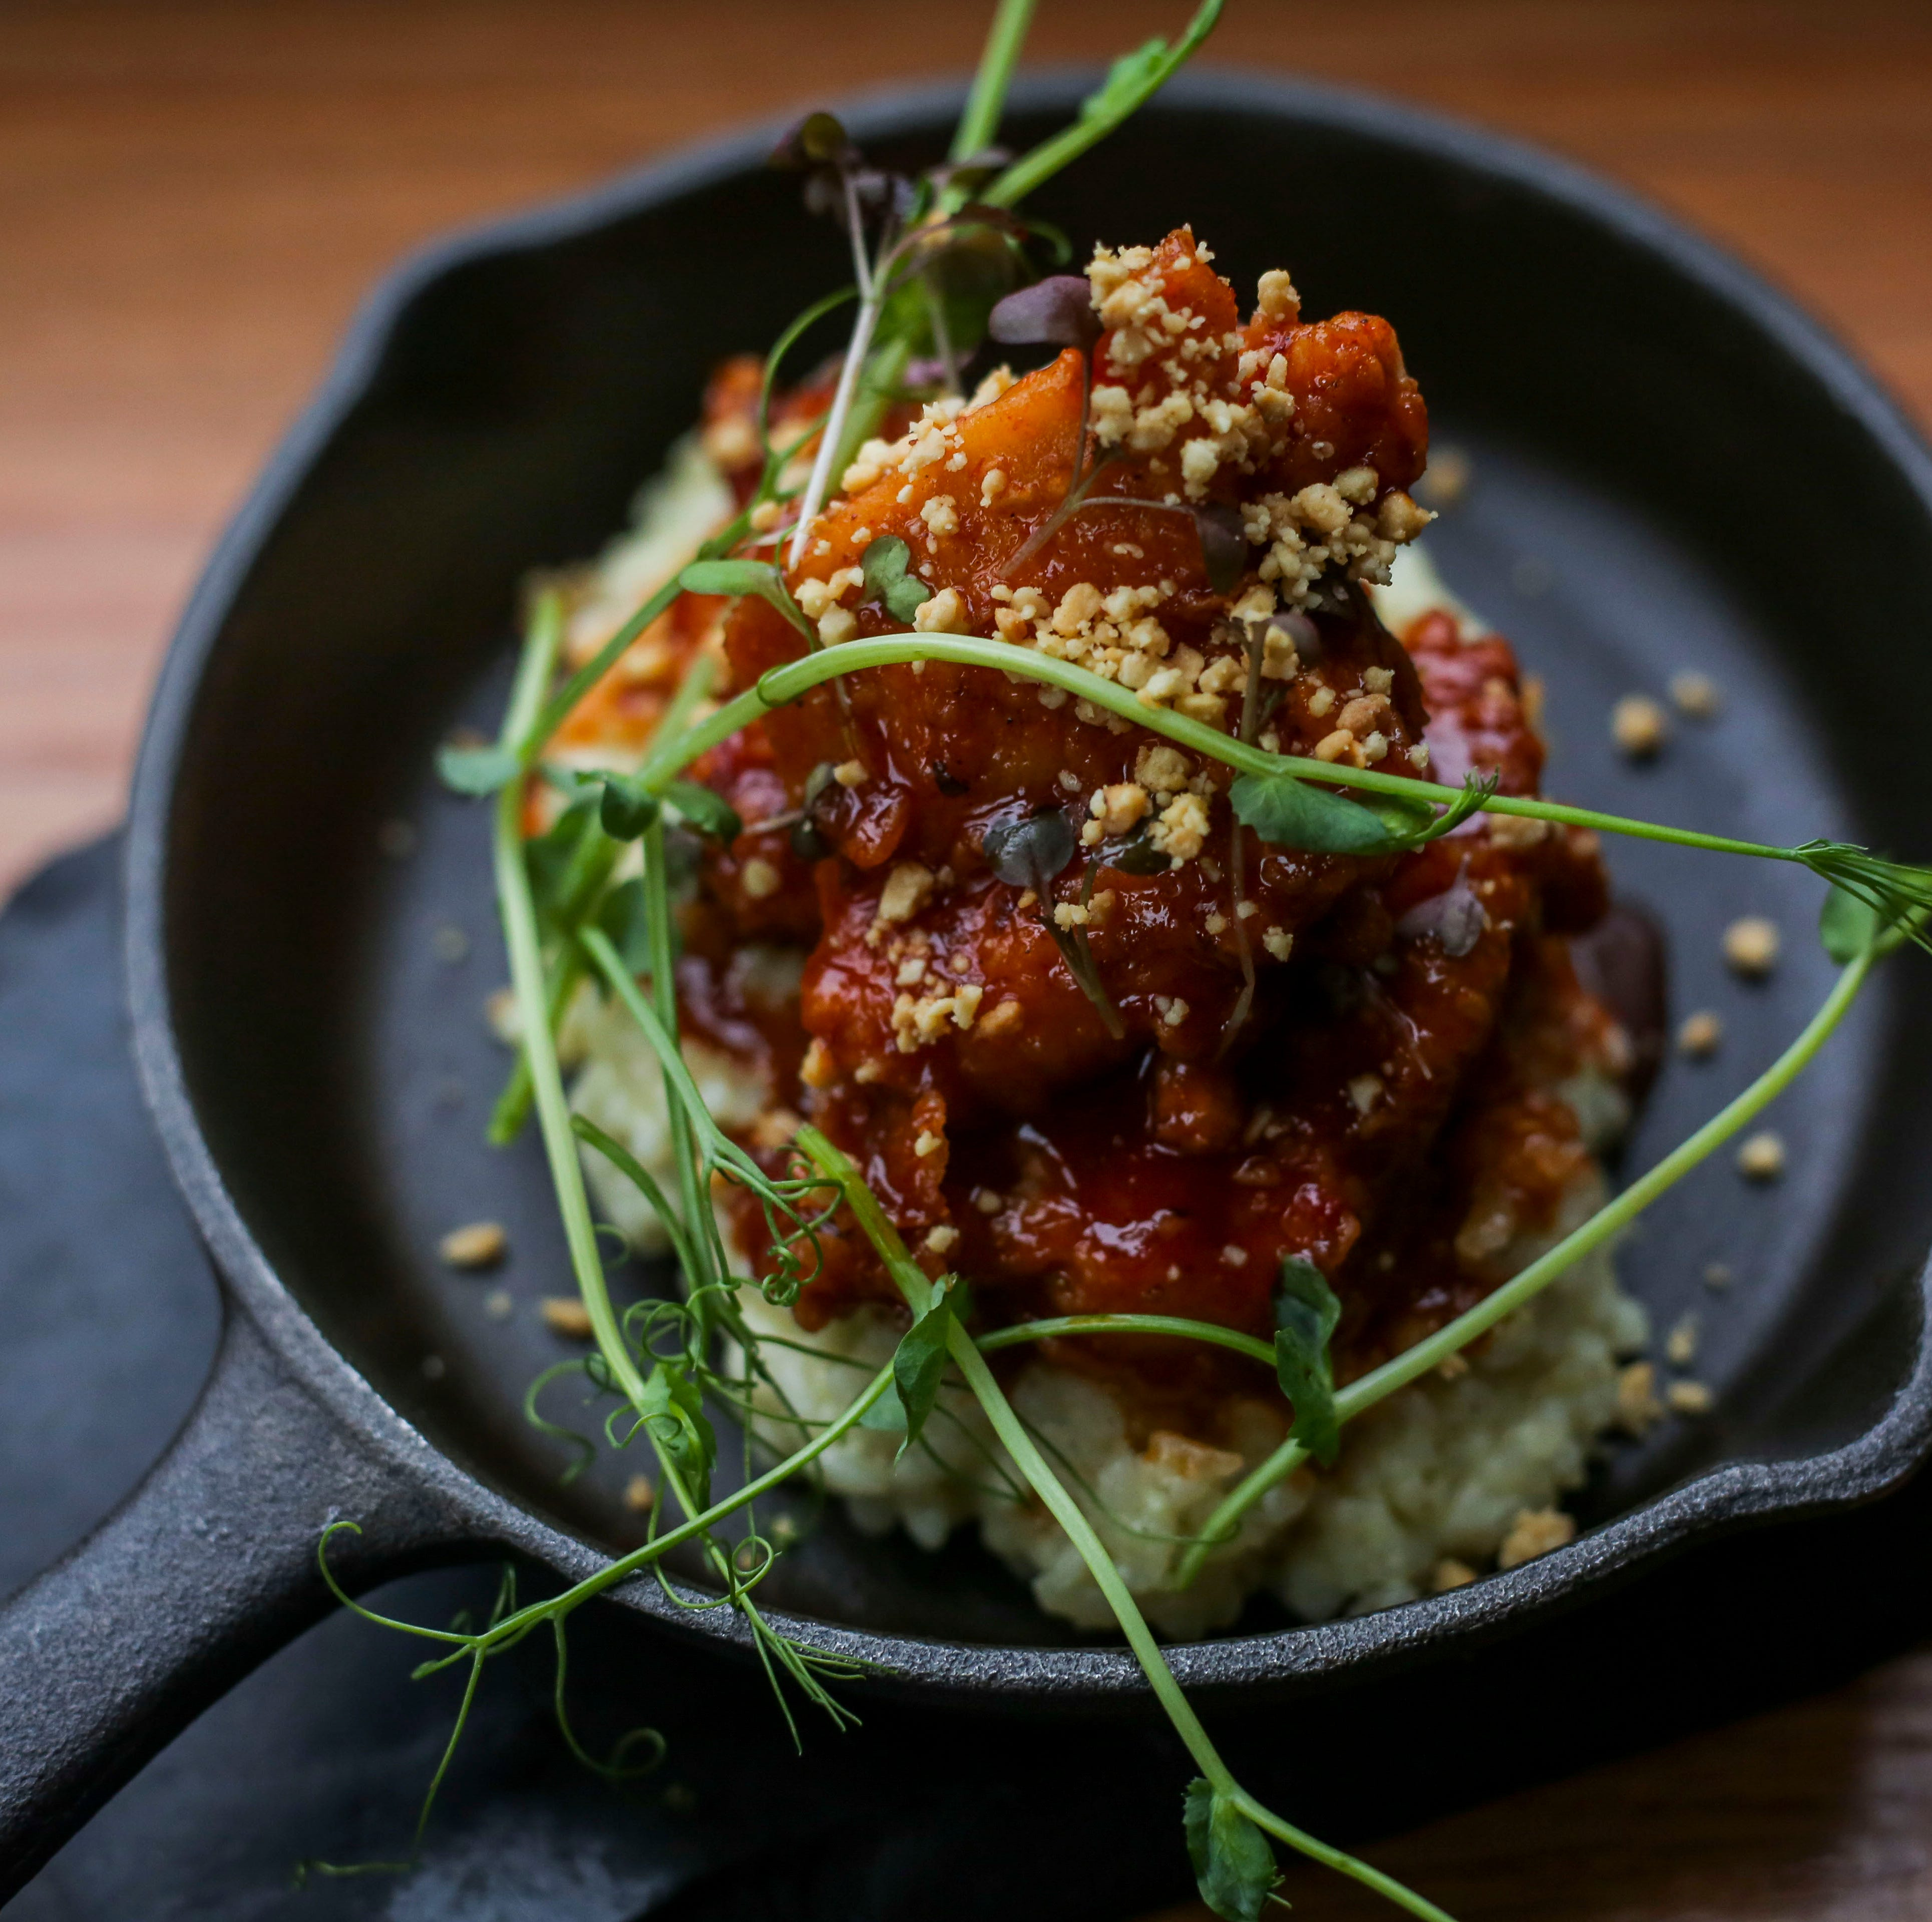 Chef behind Hammerheads and Game brings us a delicious new restaurant: Ostra